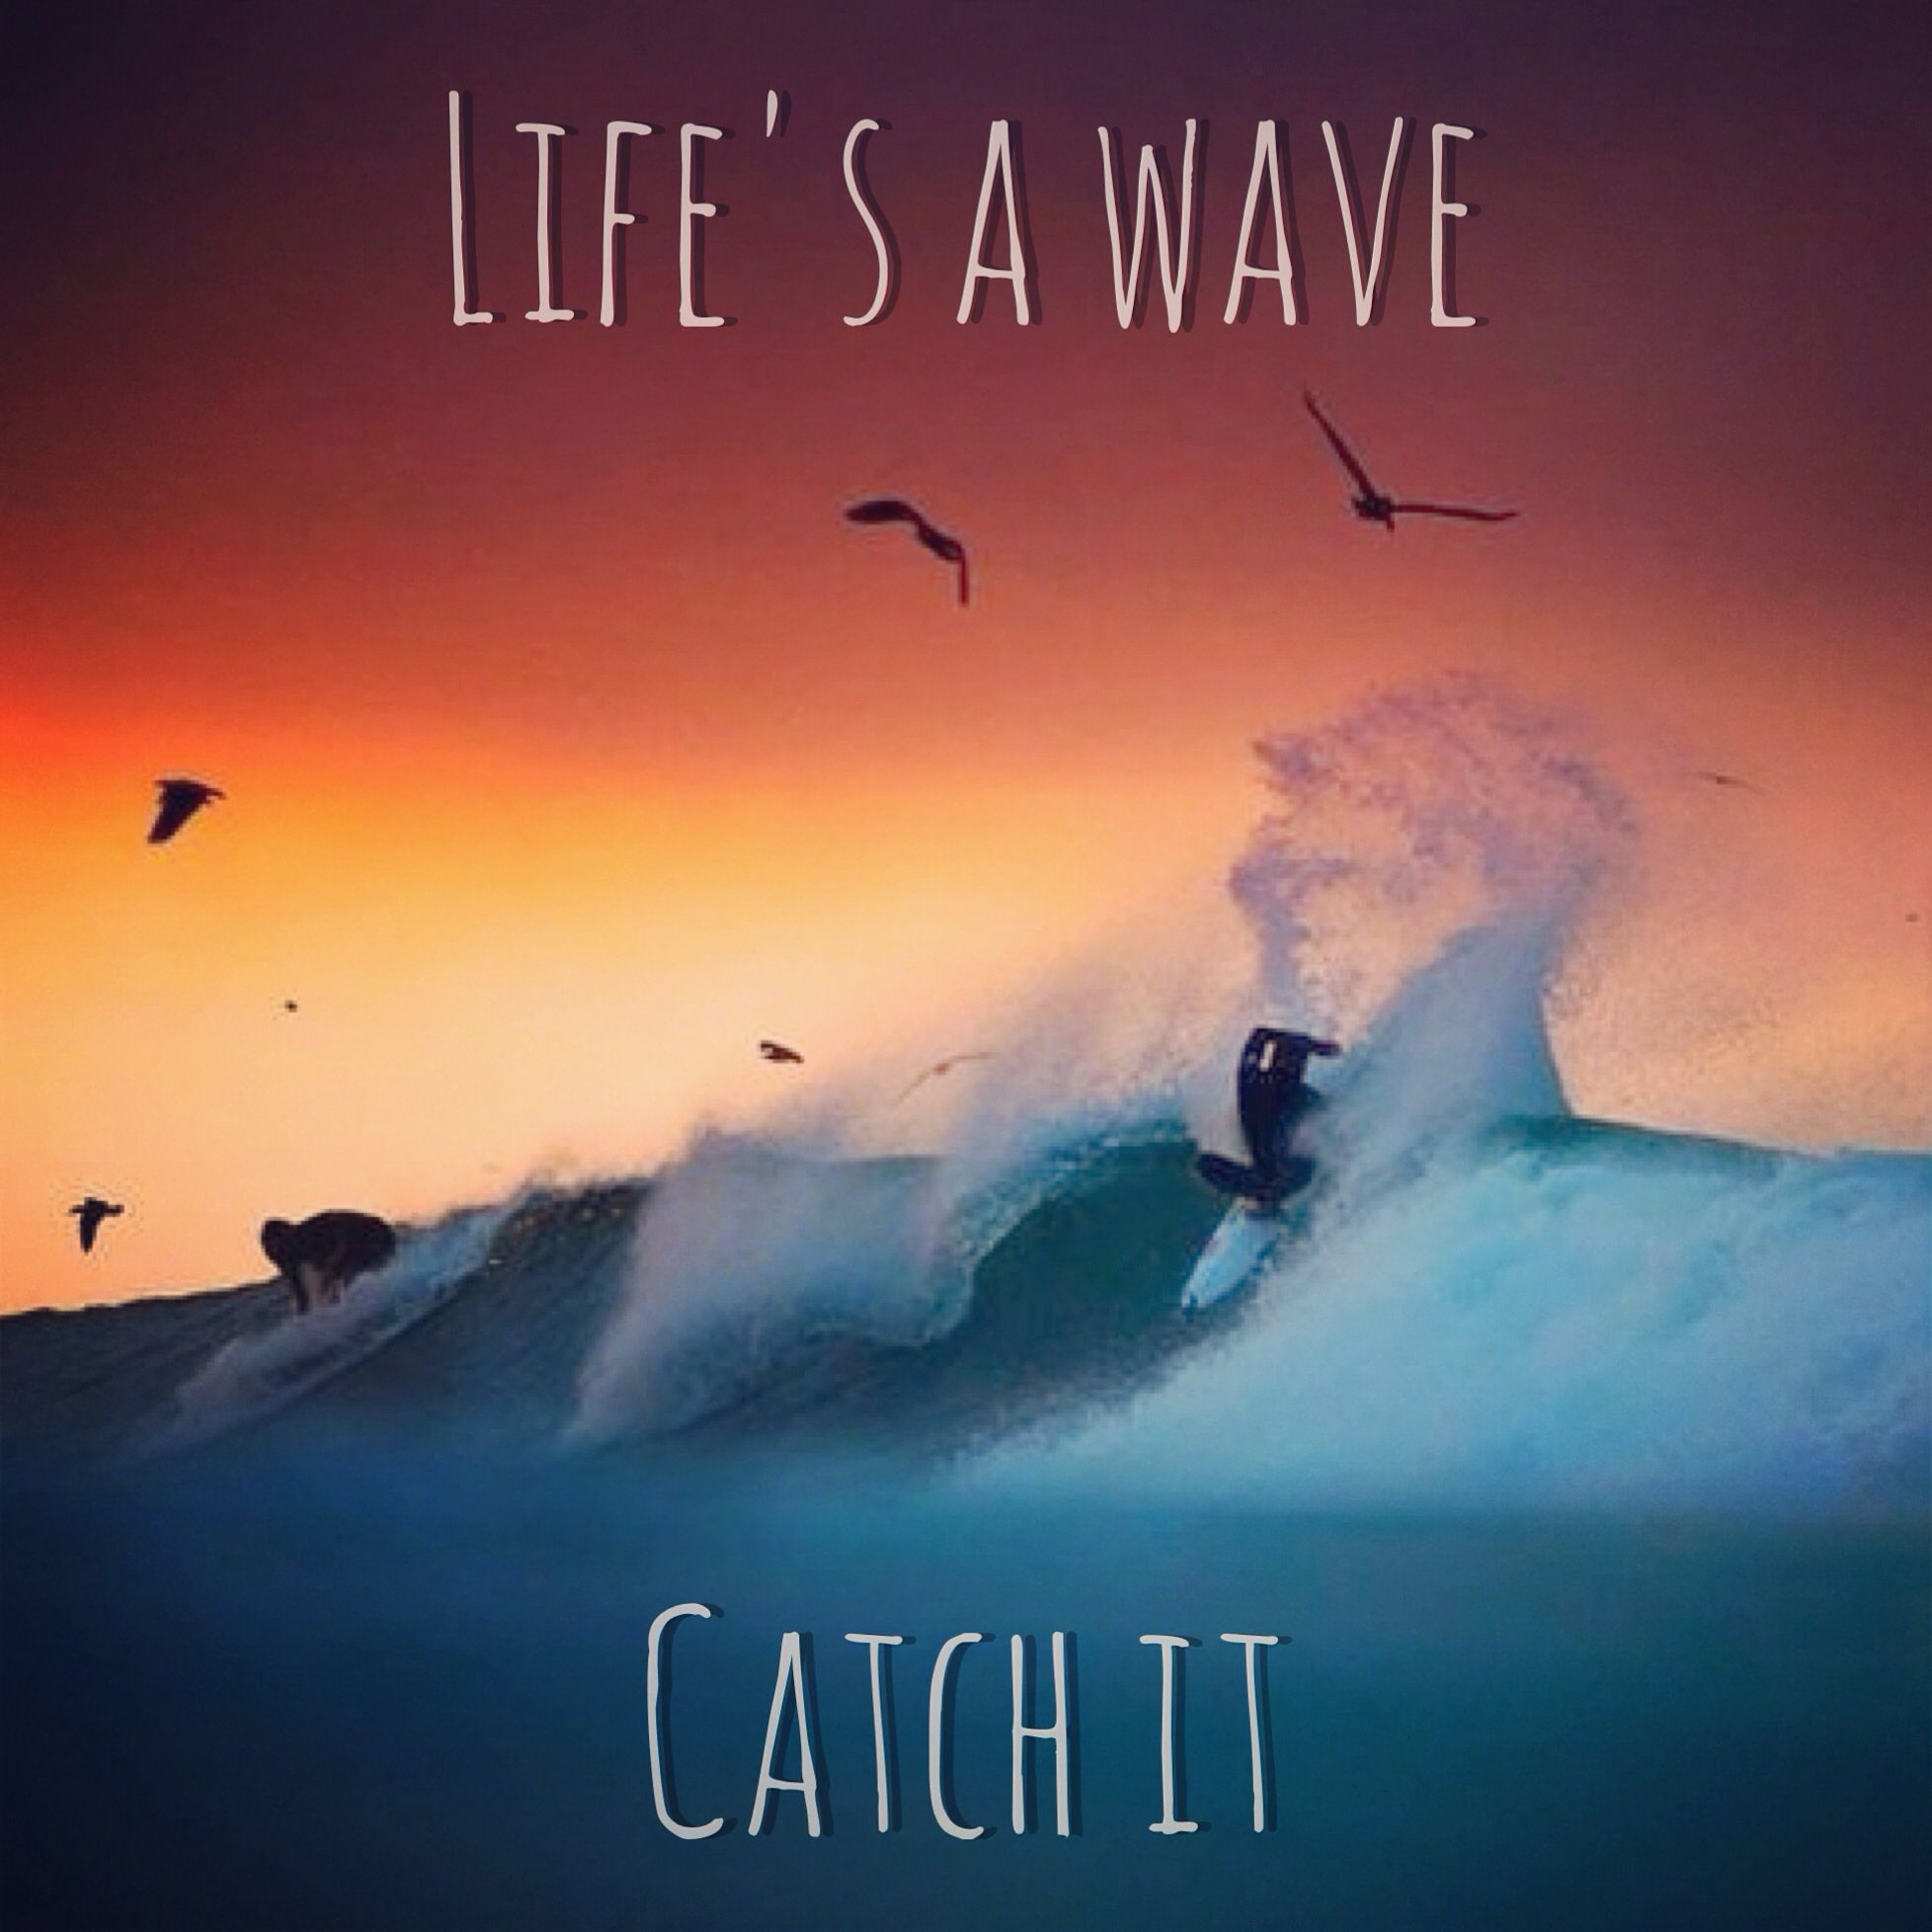 Waves Quotes: Life Is A Wave~Catch It #quote #surfing #waves #ocean